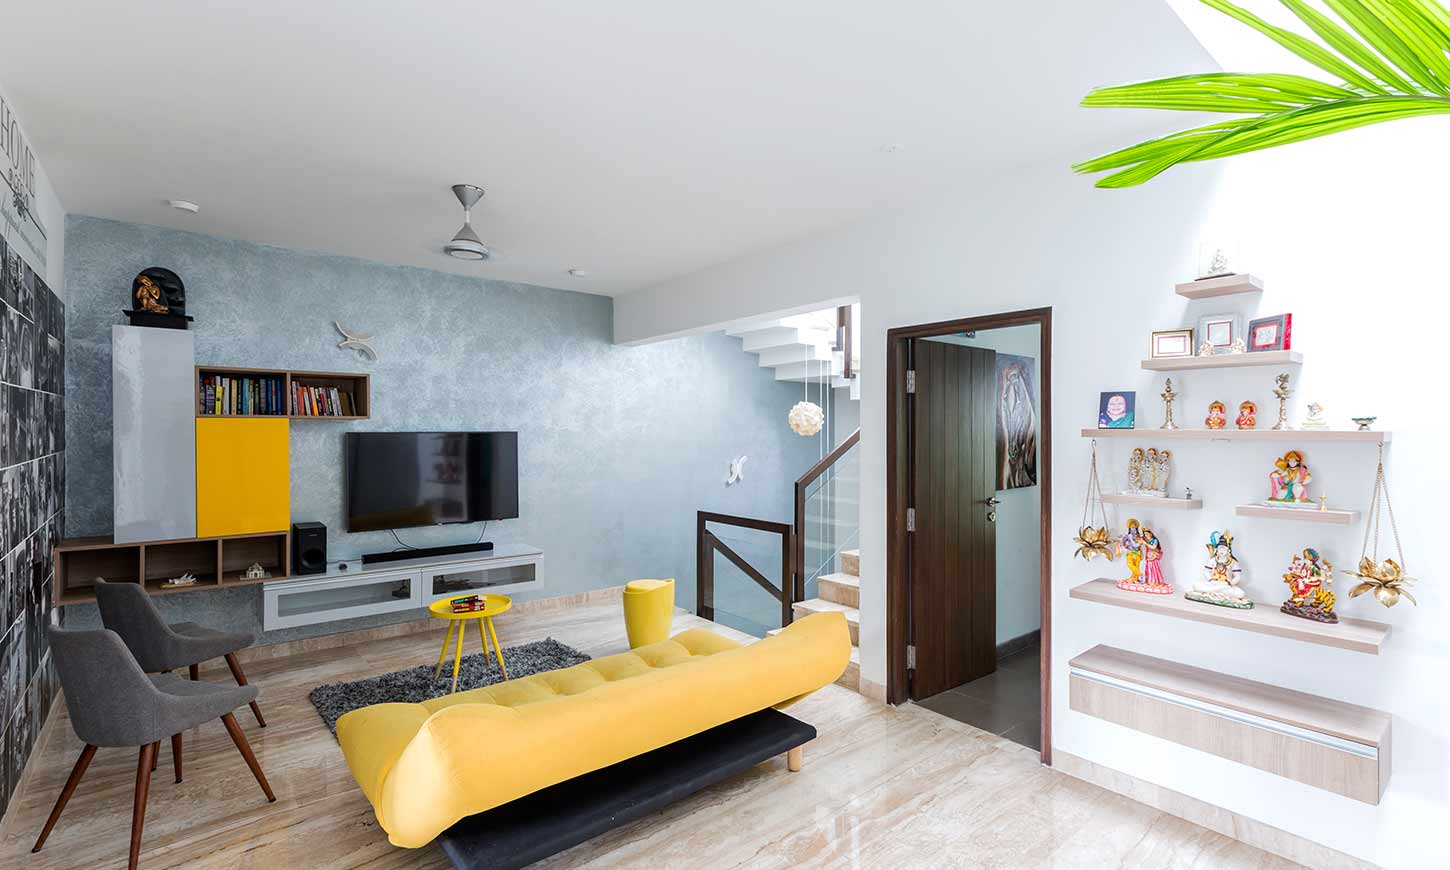 Good interior designers in bangalore with a bold yellow sofa in living room